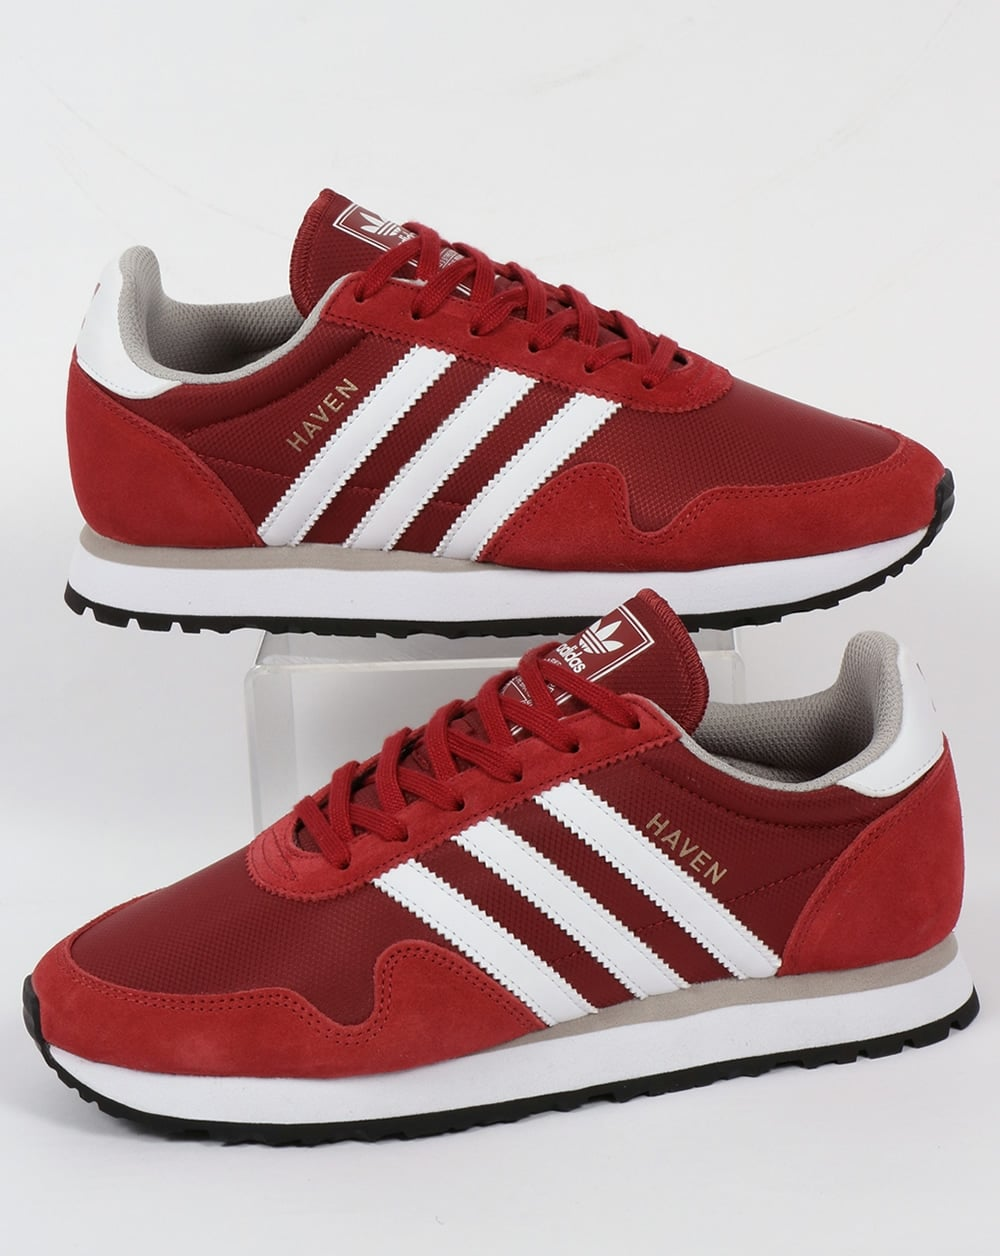 df58ba0a4492 adidas Trainers Adidas Haven Trainers Mystery Red White